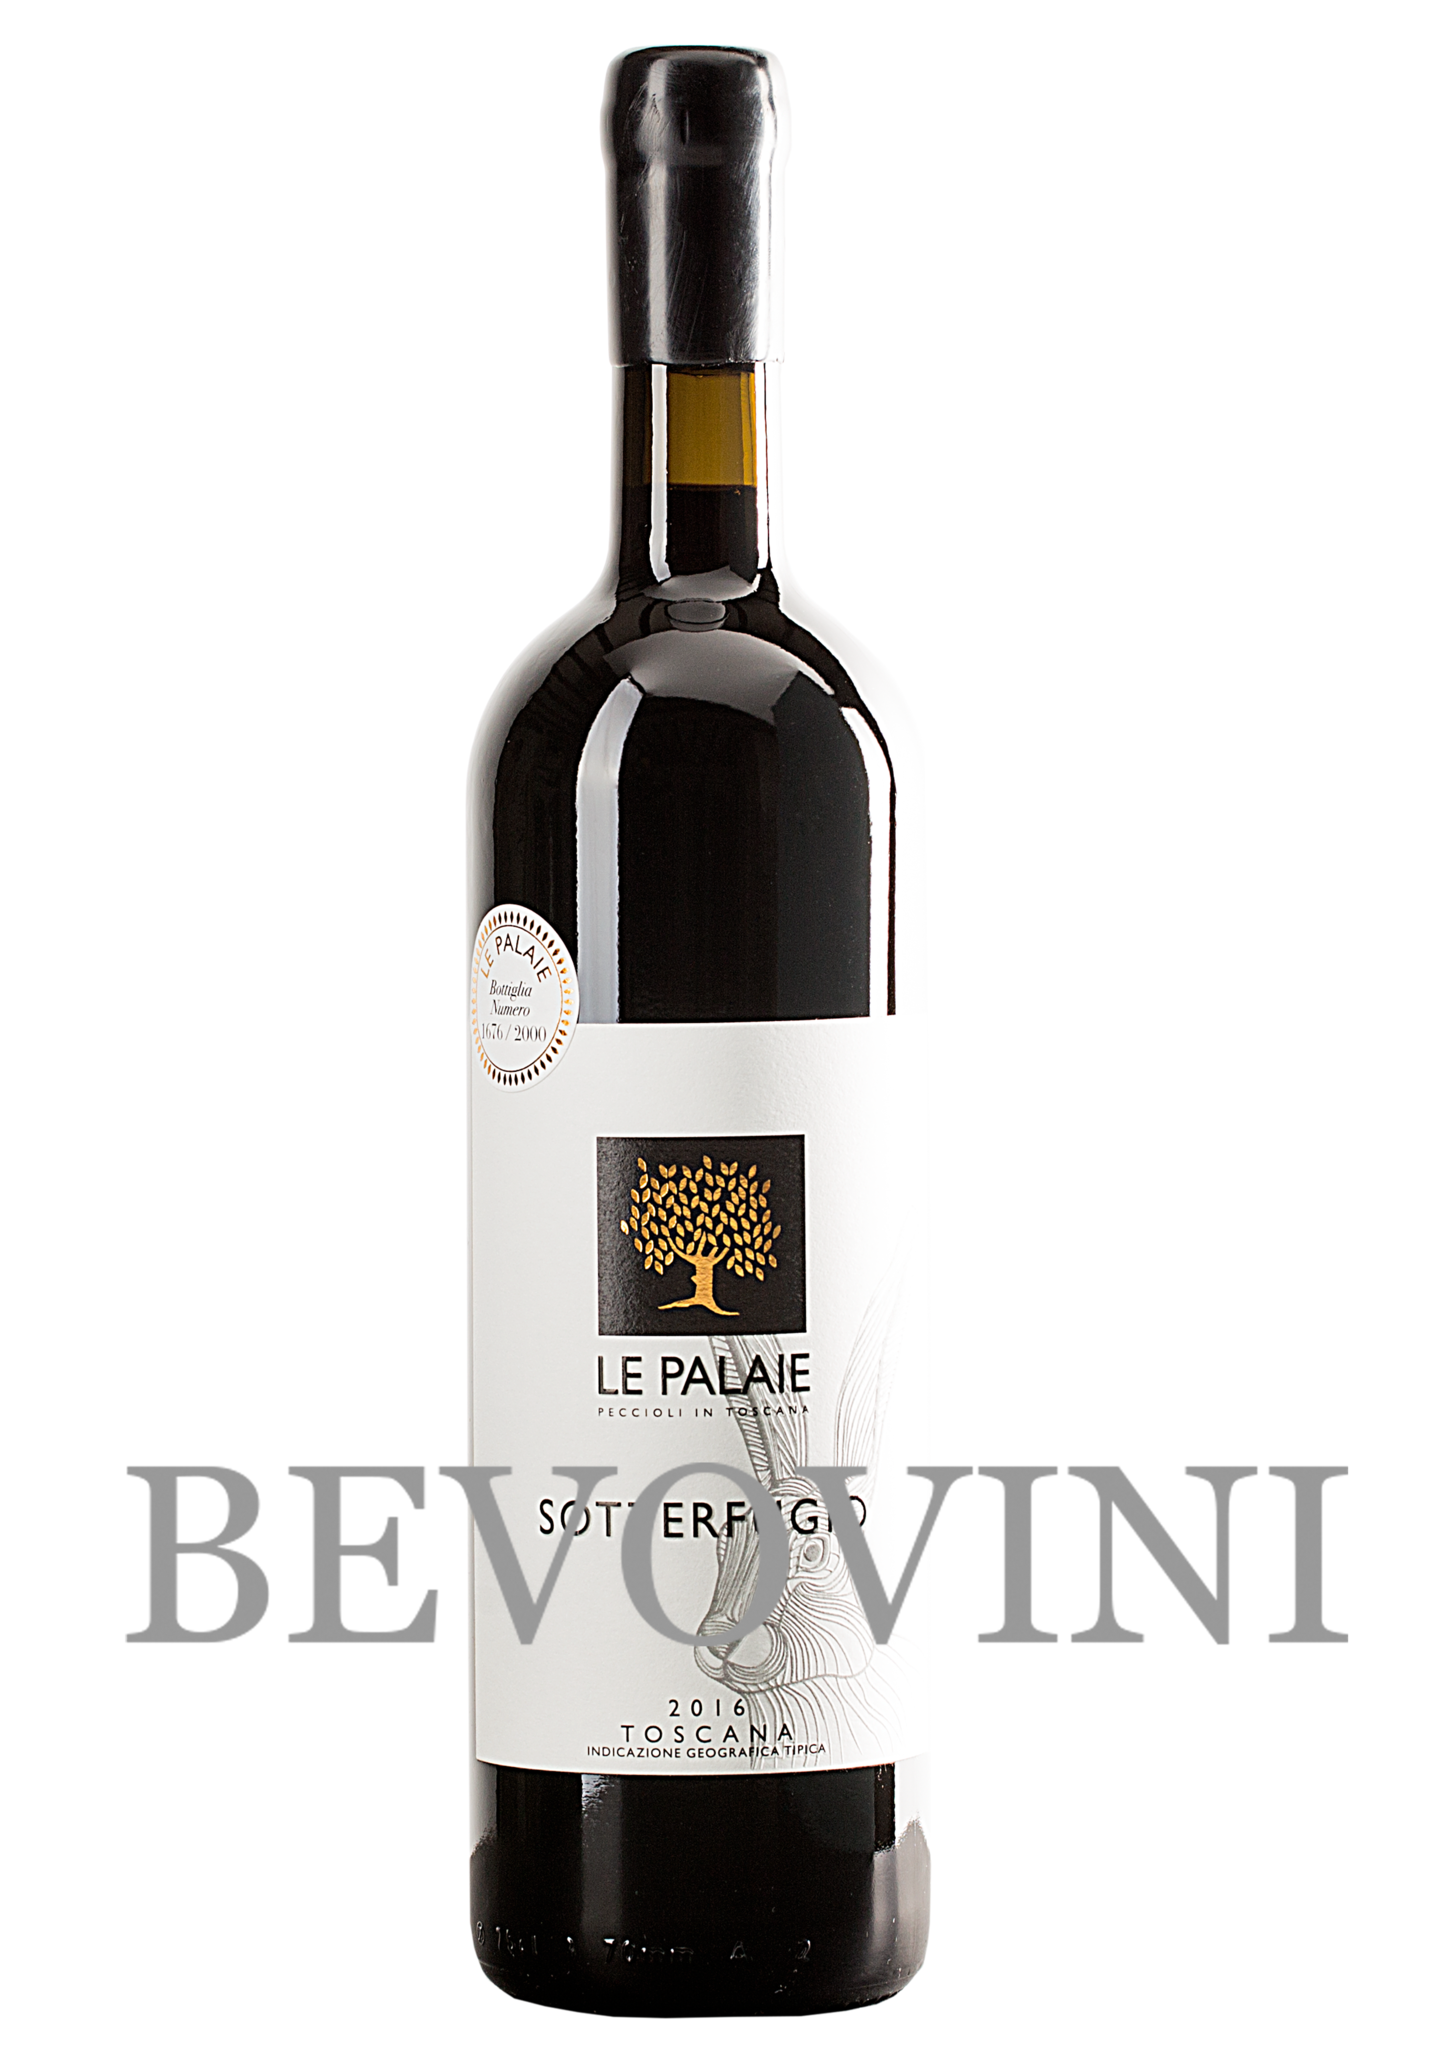 Le Palaie Vino Rosso Toscana Igt - Sotterfugio 2016